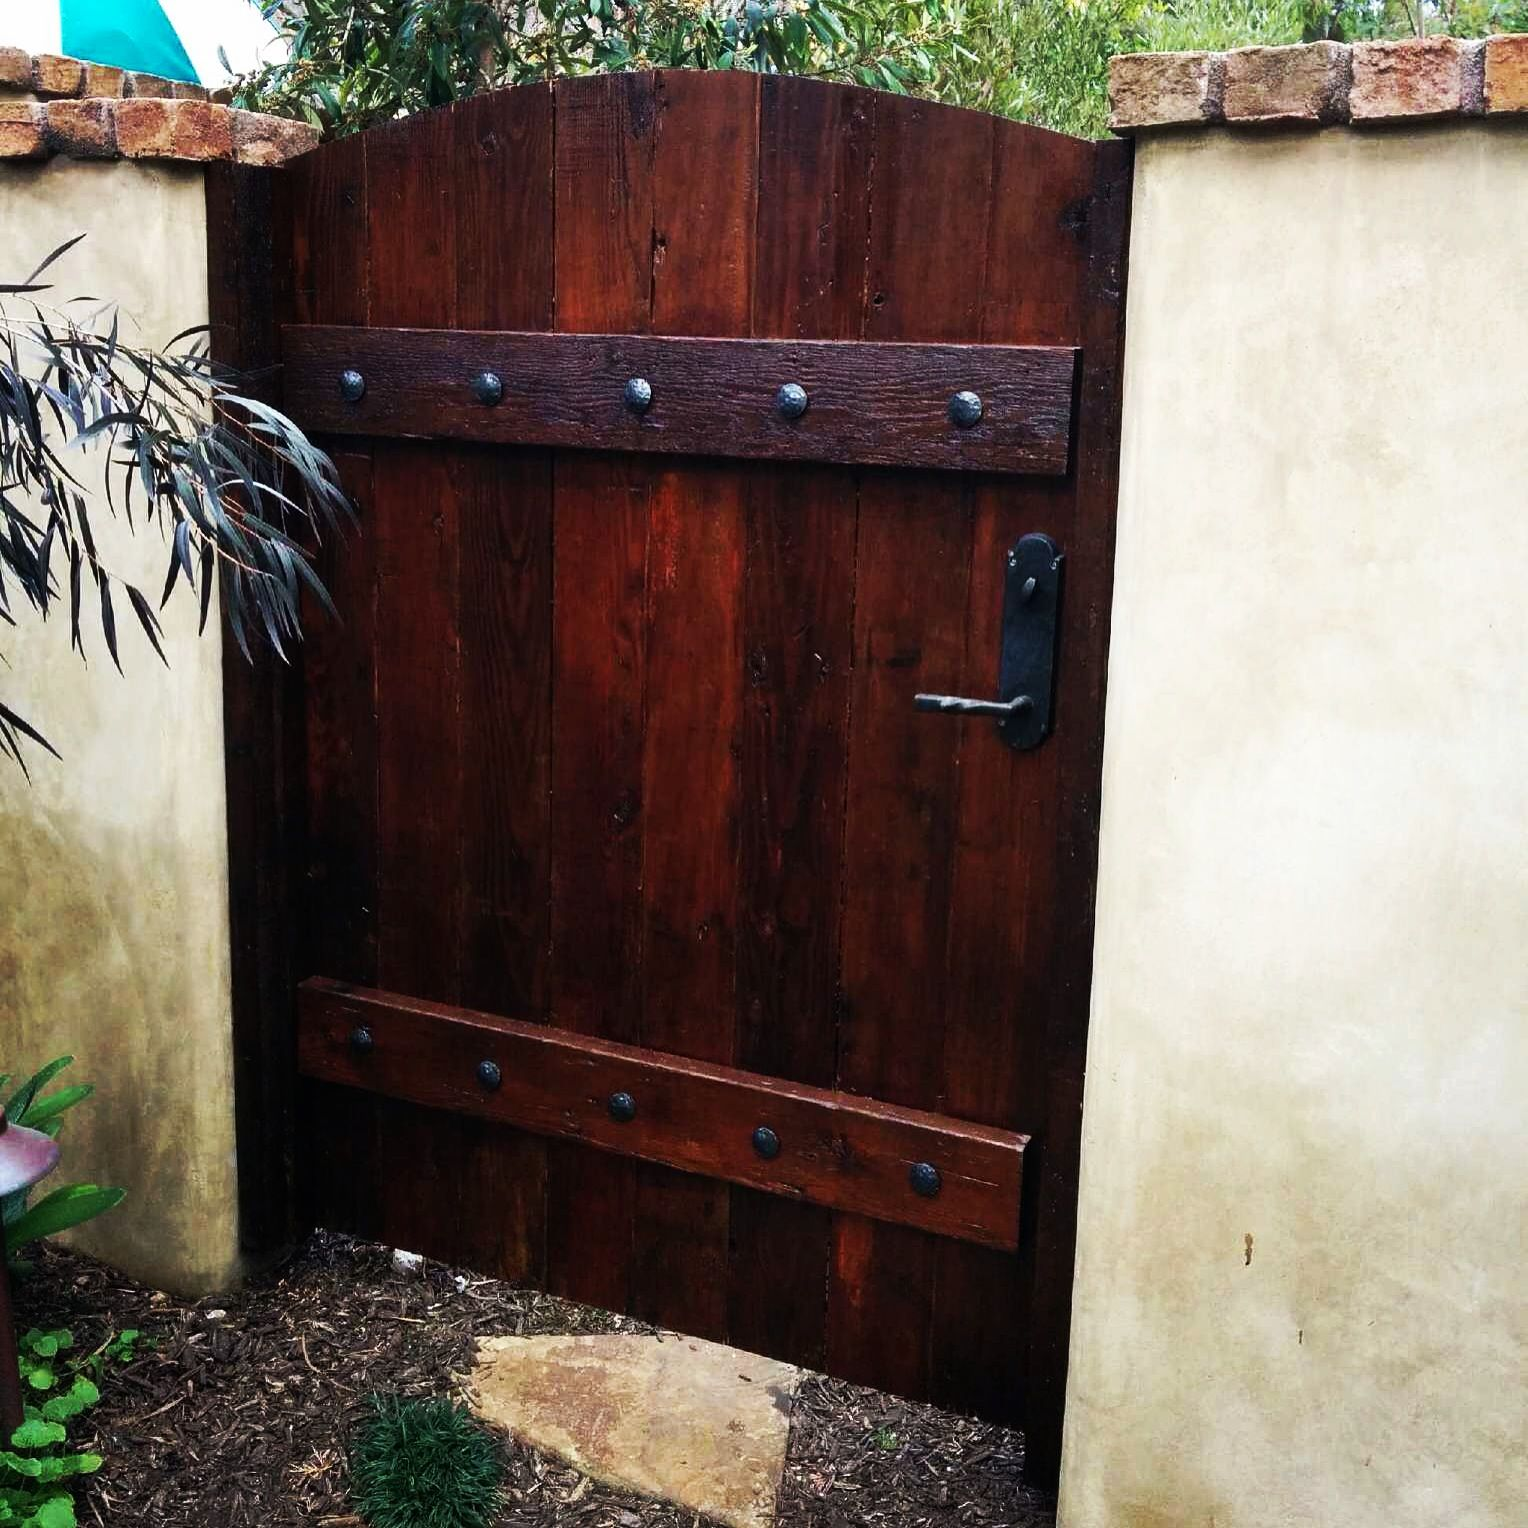 Barn Wood Furniture For Sale: Wood Crafts, Wood For Sale, Wood